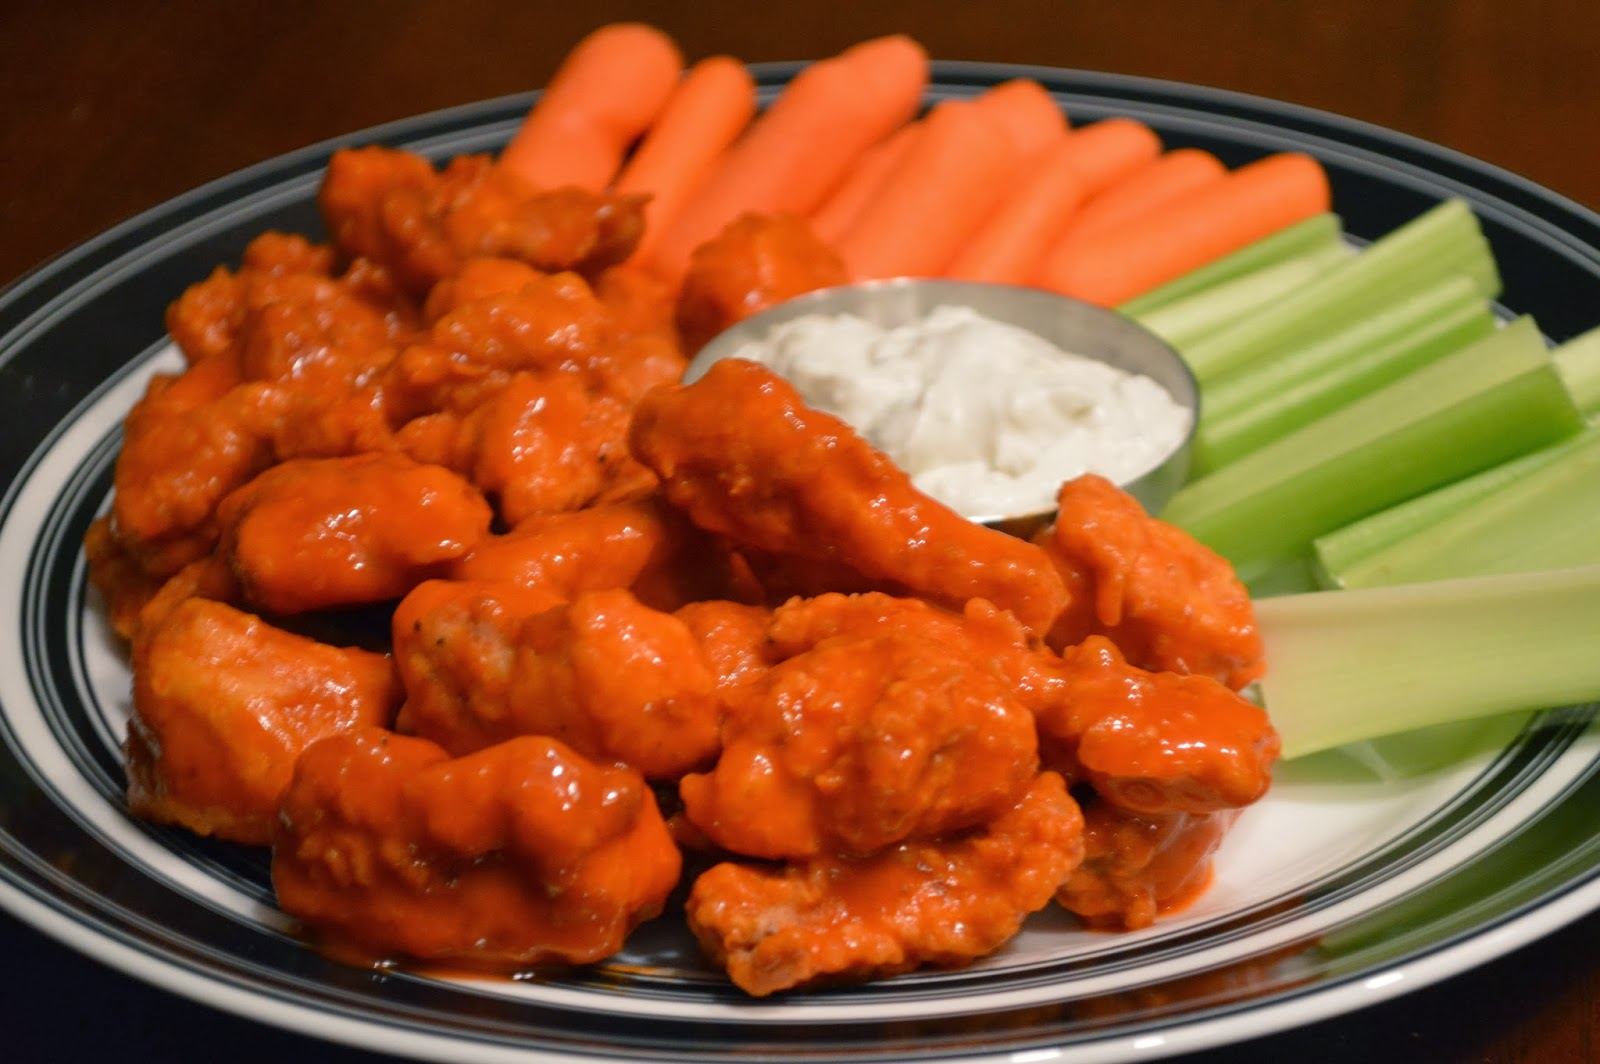 ... Football Friday: Boneless Buffalo Wings and Blue Cheese Dipping Sauce